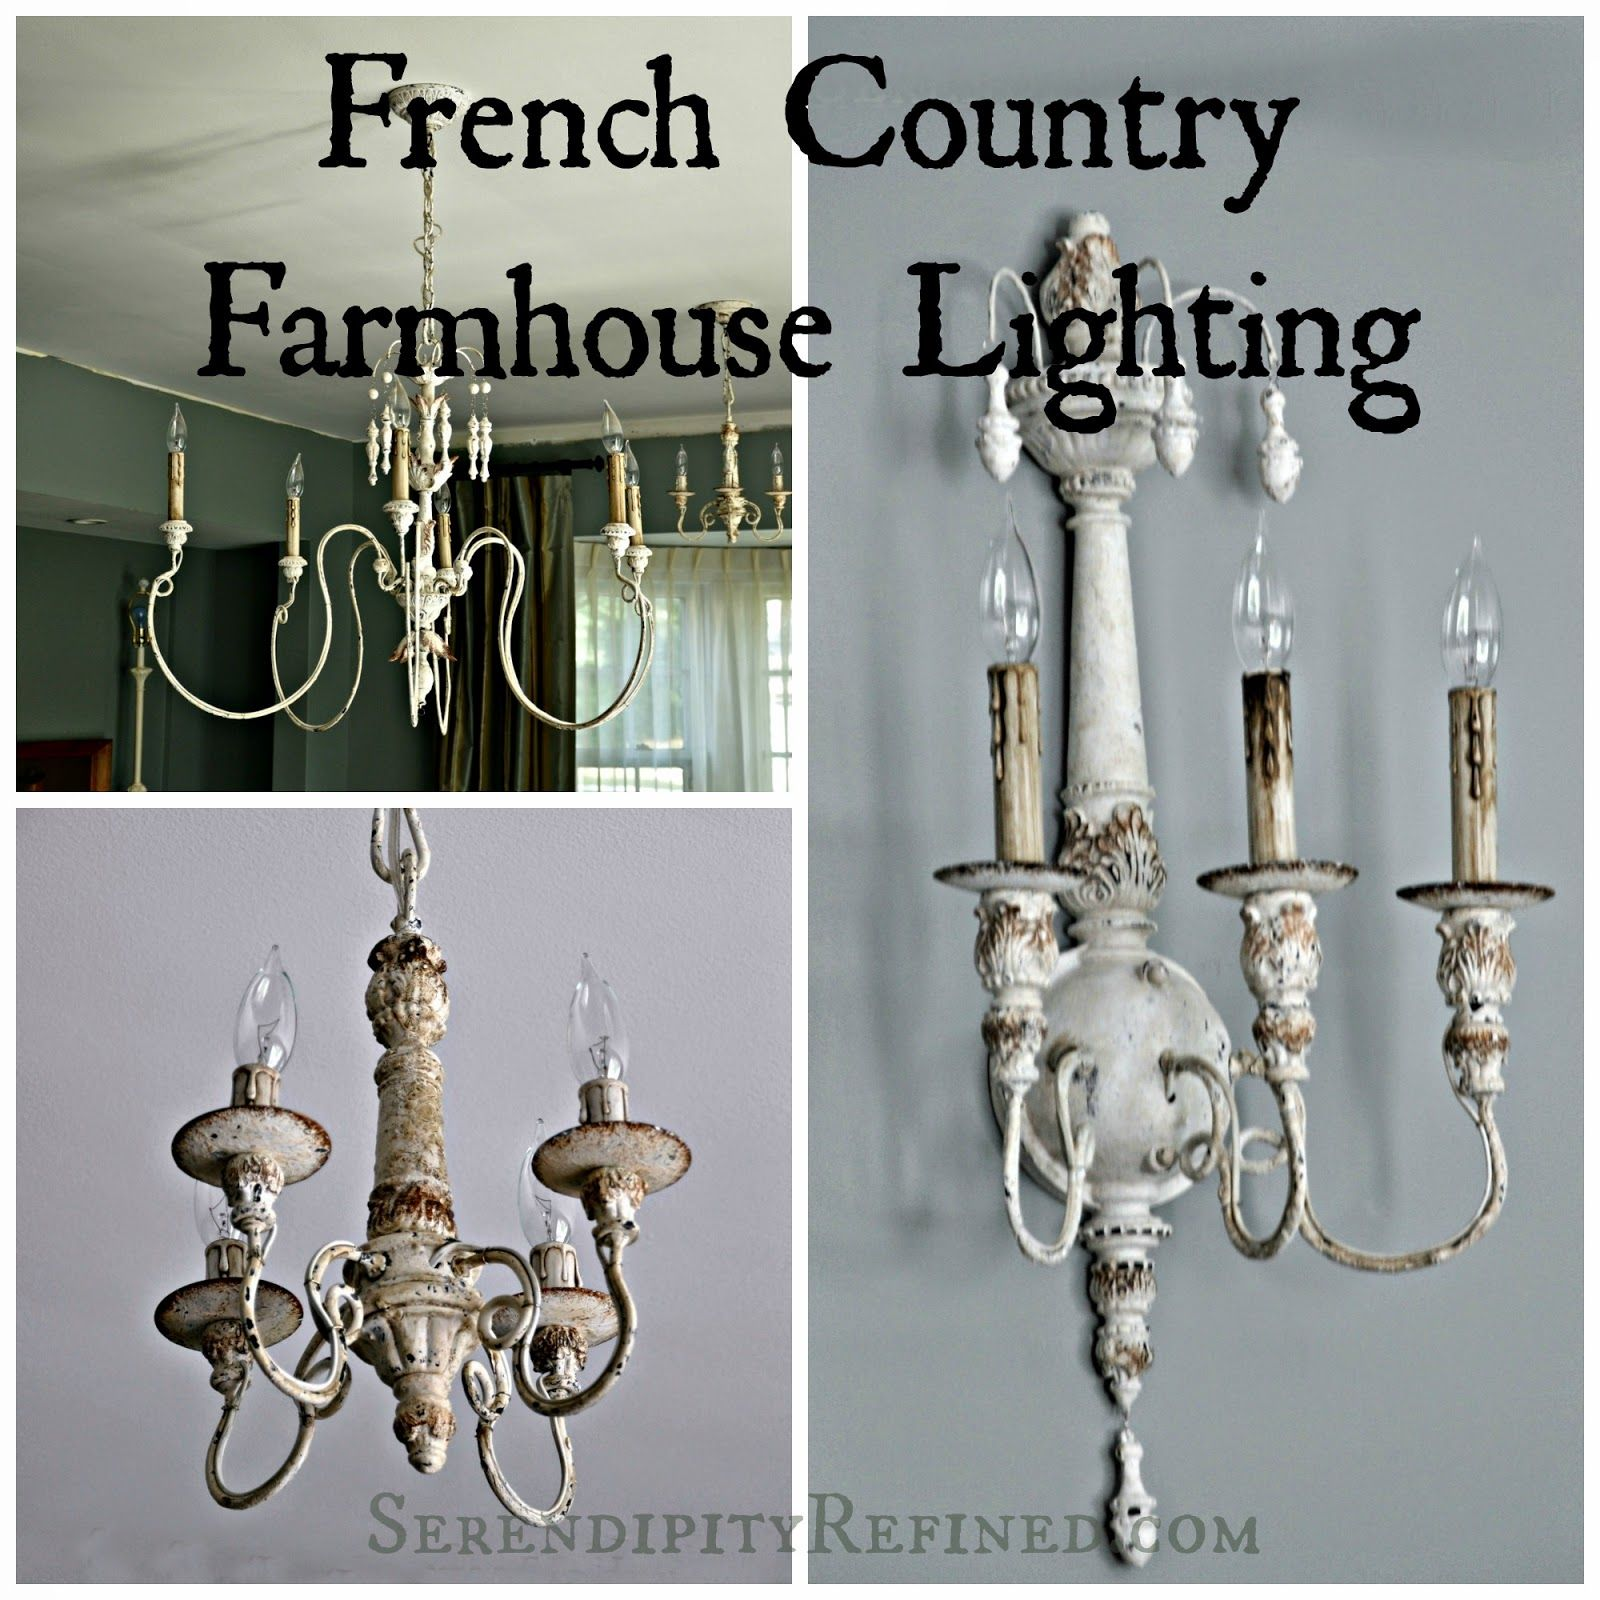 French Country Farmhouse Style Chandeliers And Sconces With Resources Www Serendipityrefined